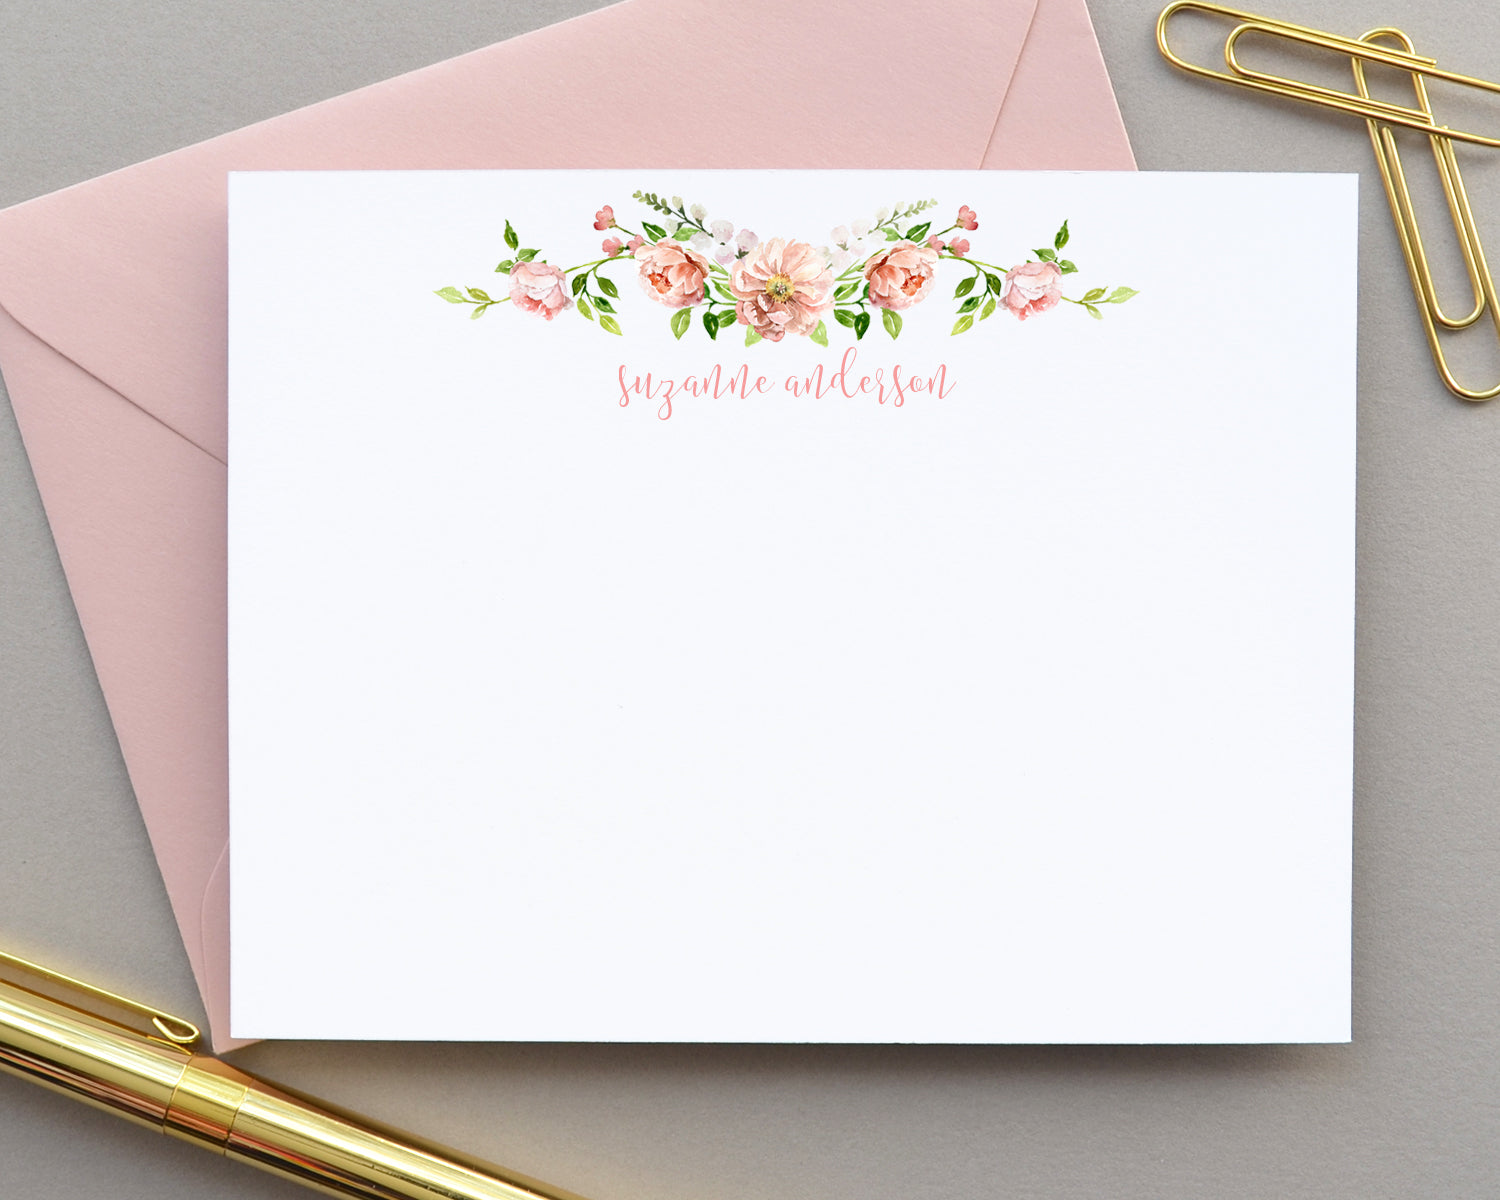 Personalized Peony Watercolor Floral Note Cards